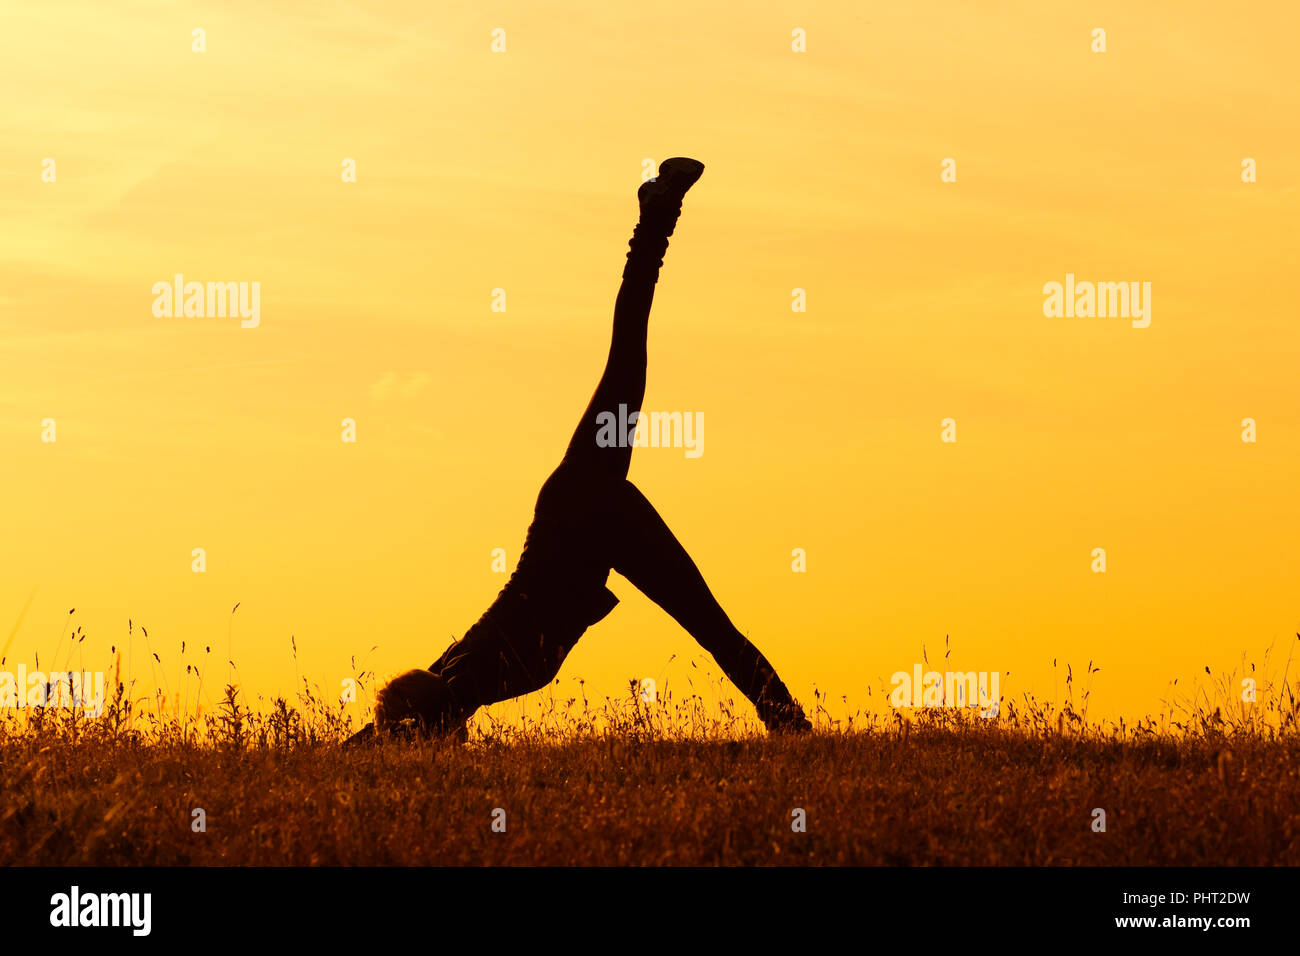 Yogaone Legged Downward Facing Hund Darstellen Stockfoto Bild